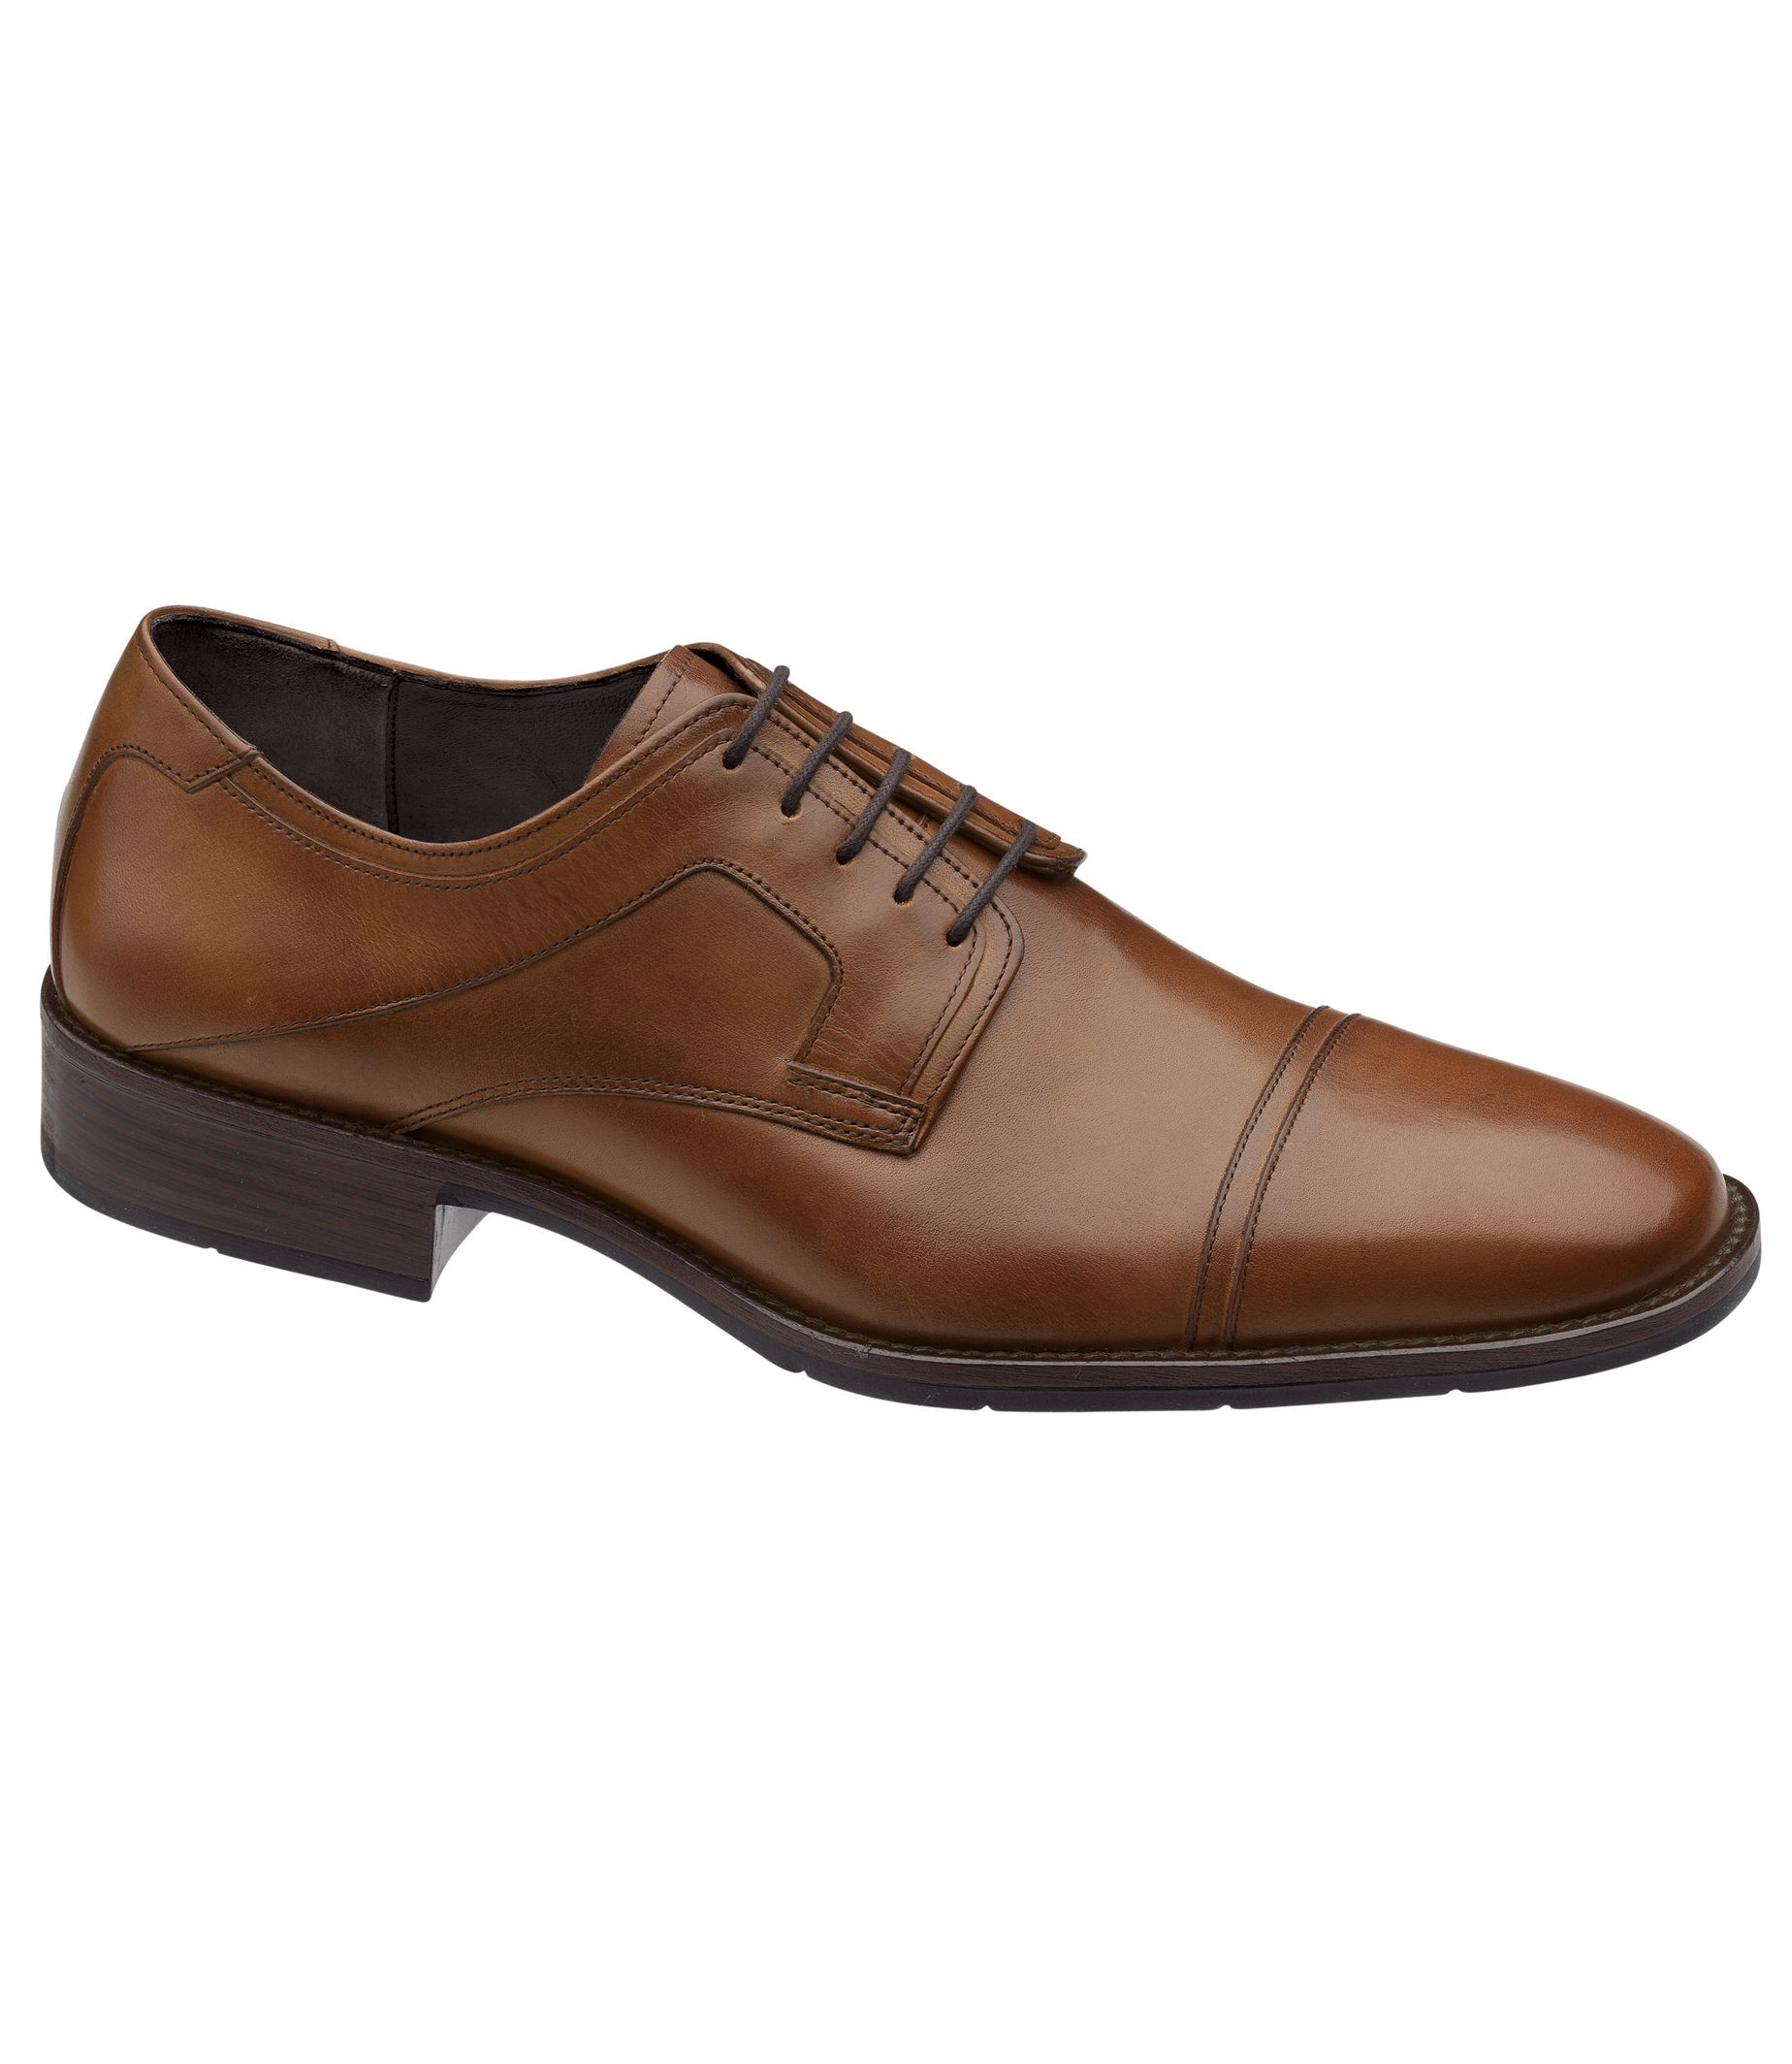 e475a316e36 Larsey Cap Toe Shoe by Johnston & Murphy CLEARANCE